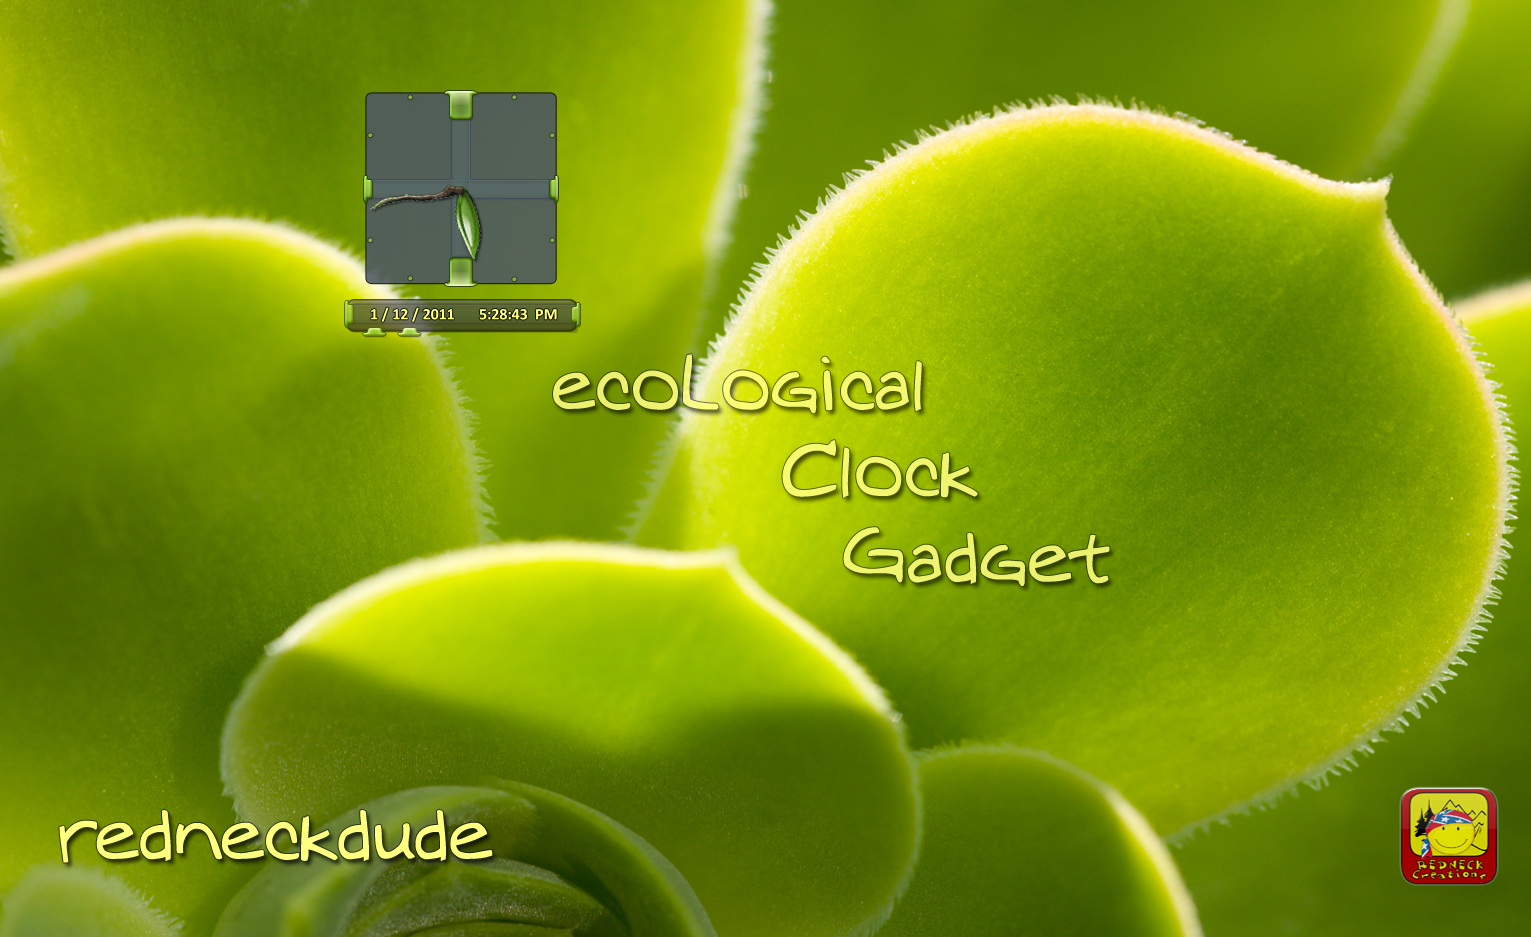 ecoLogical Clock Gadget